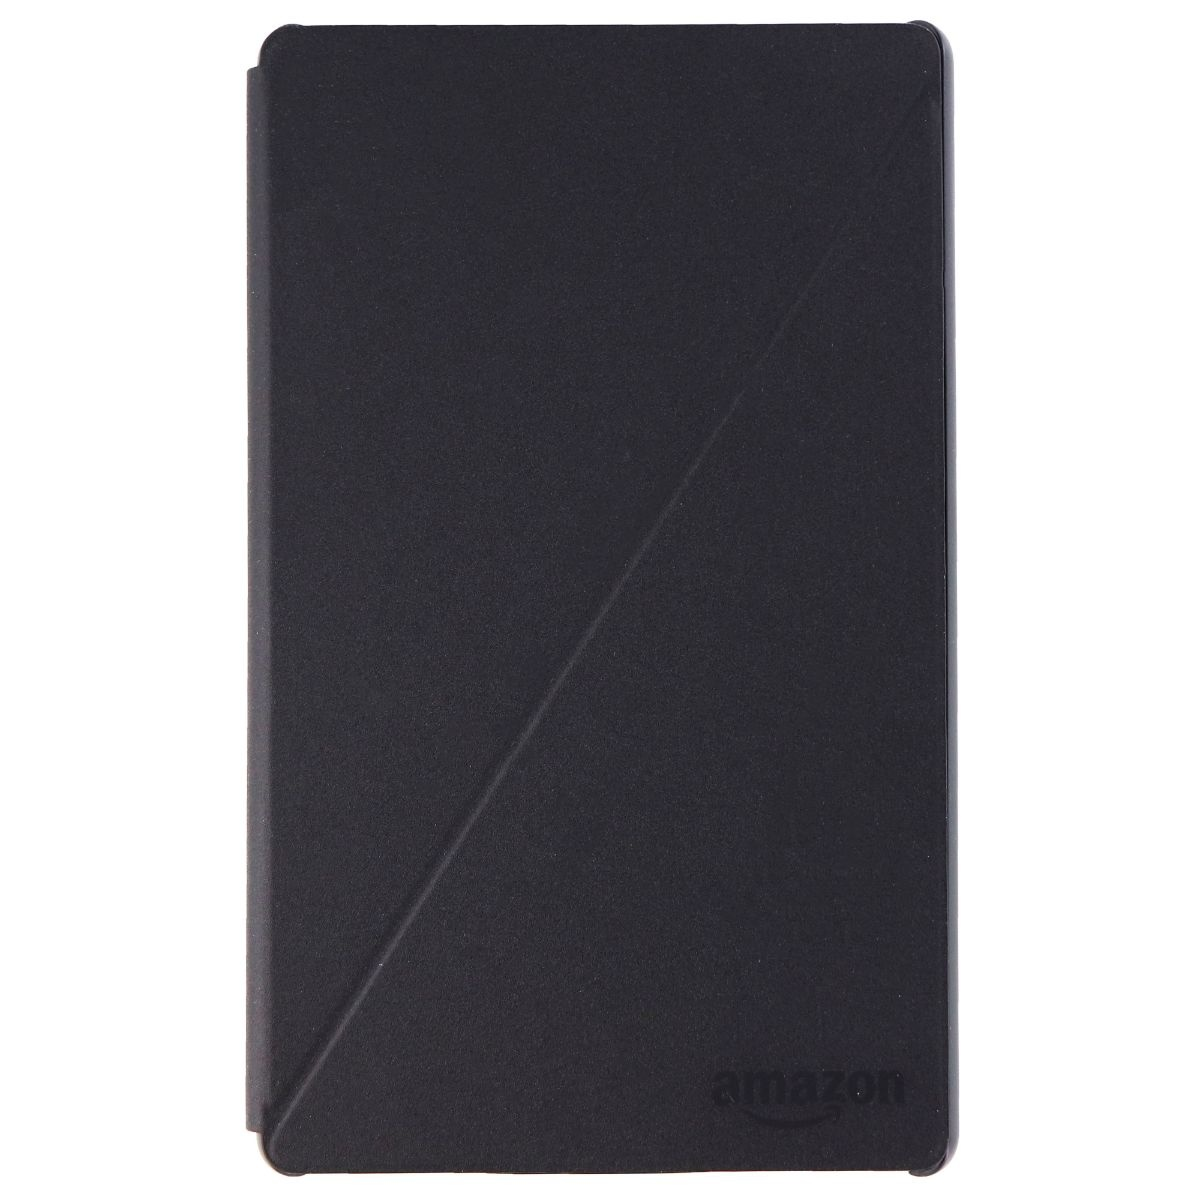 Amazon Fire HD 8 Protective Case Cover for Fire HD 8, Black